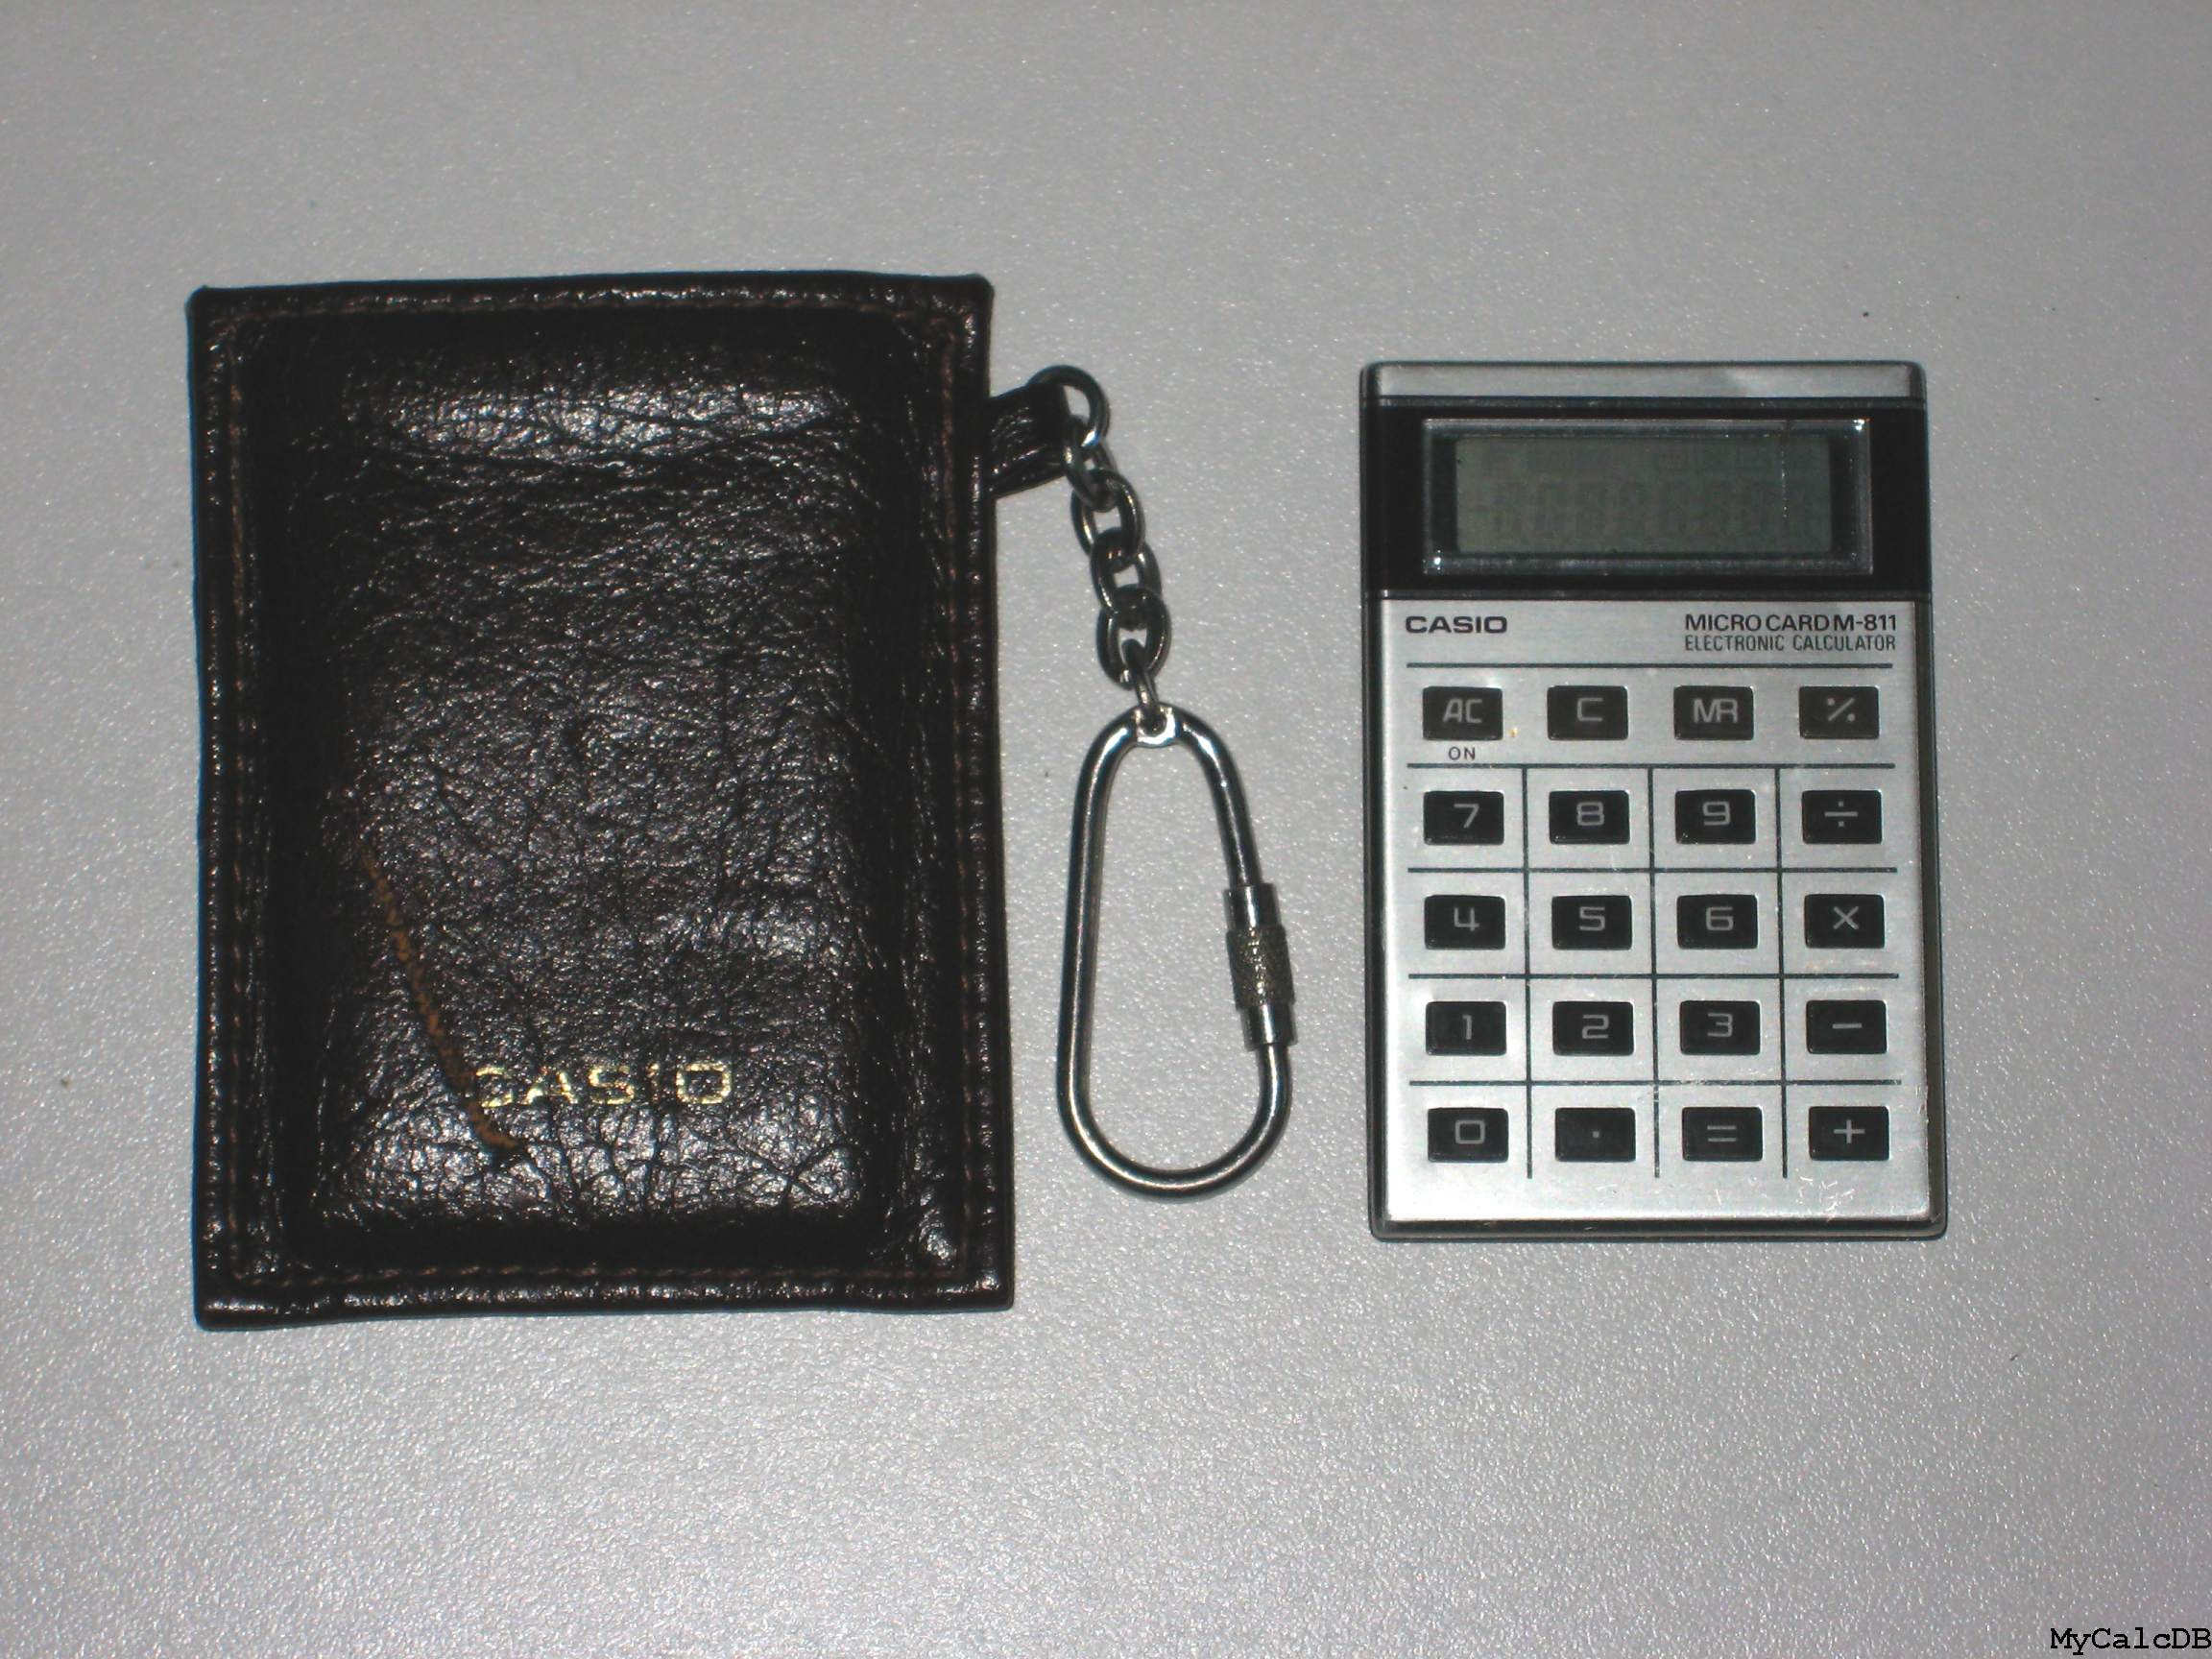 Casio MICRO CARD M-811